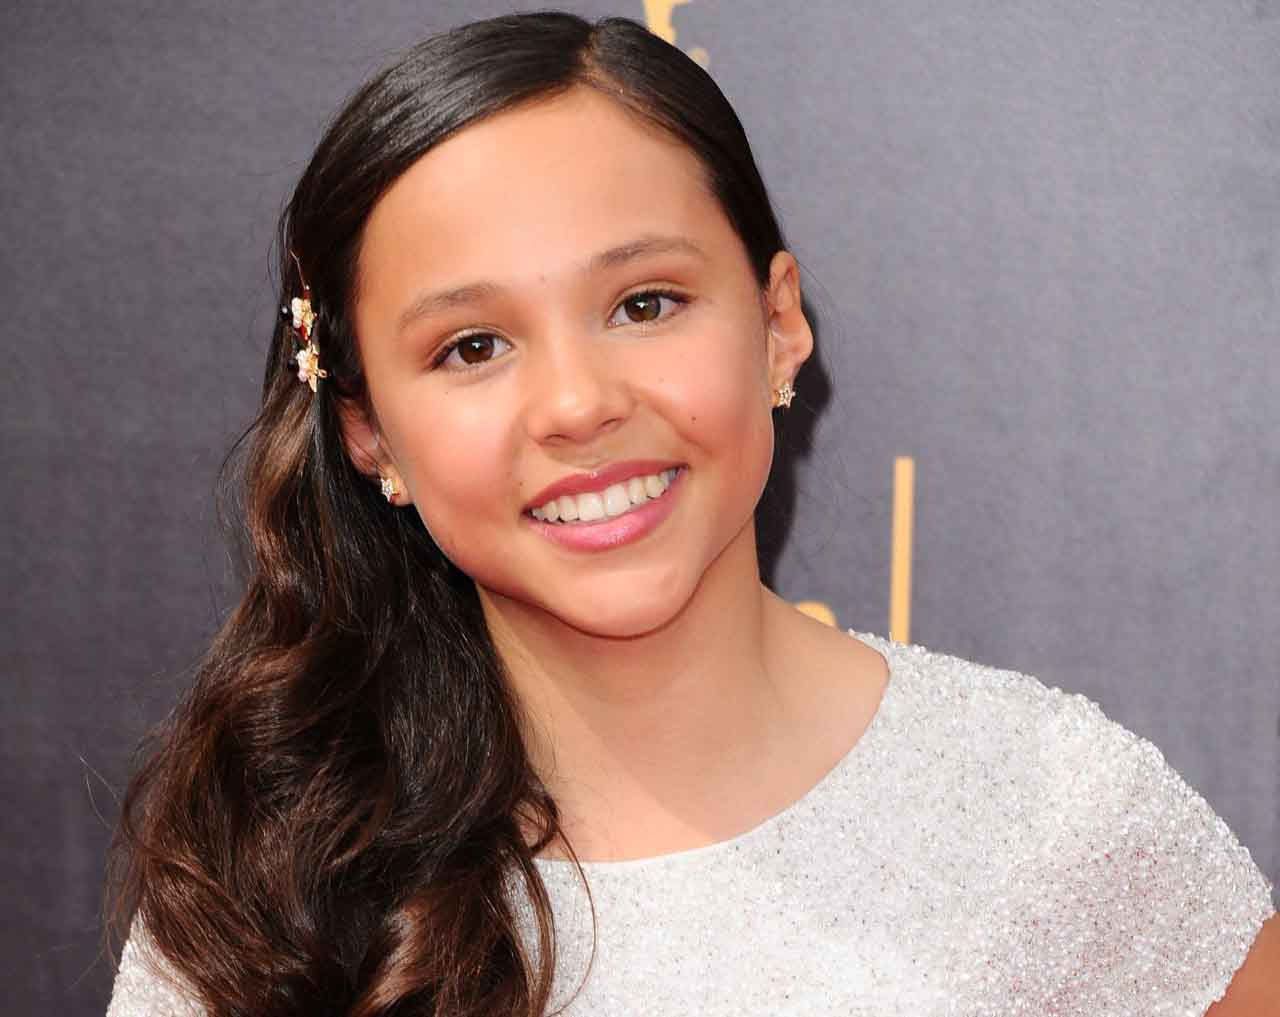 Breanna yde bio birthday height weight net worth career breanna yde bio birthday height weight net worth career ethnicity movies nationality fact career thecheapjerseys Image collections